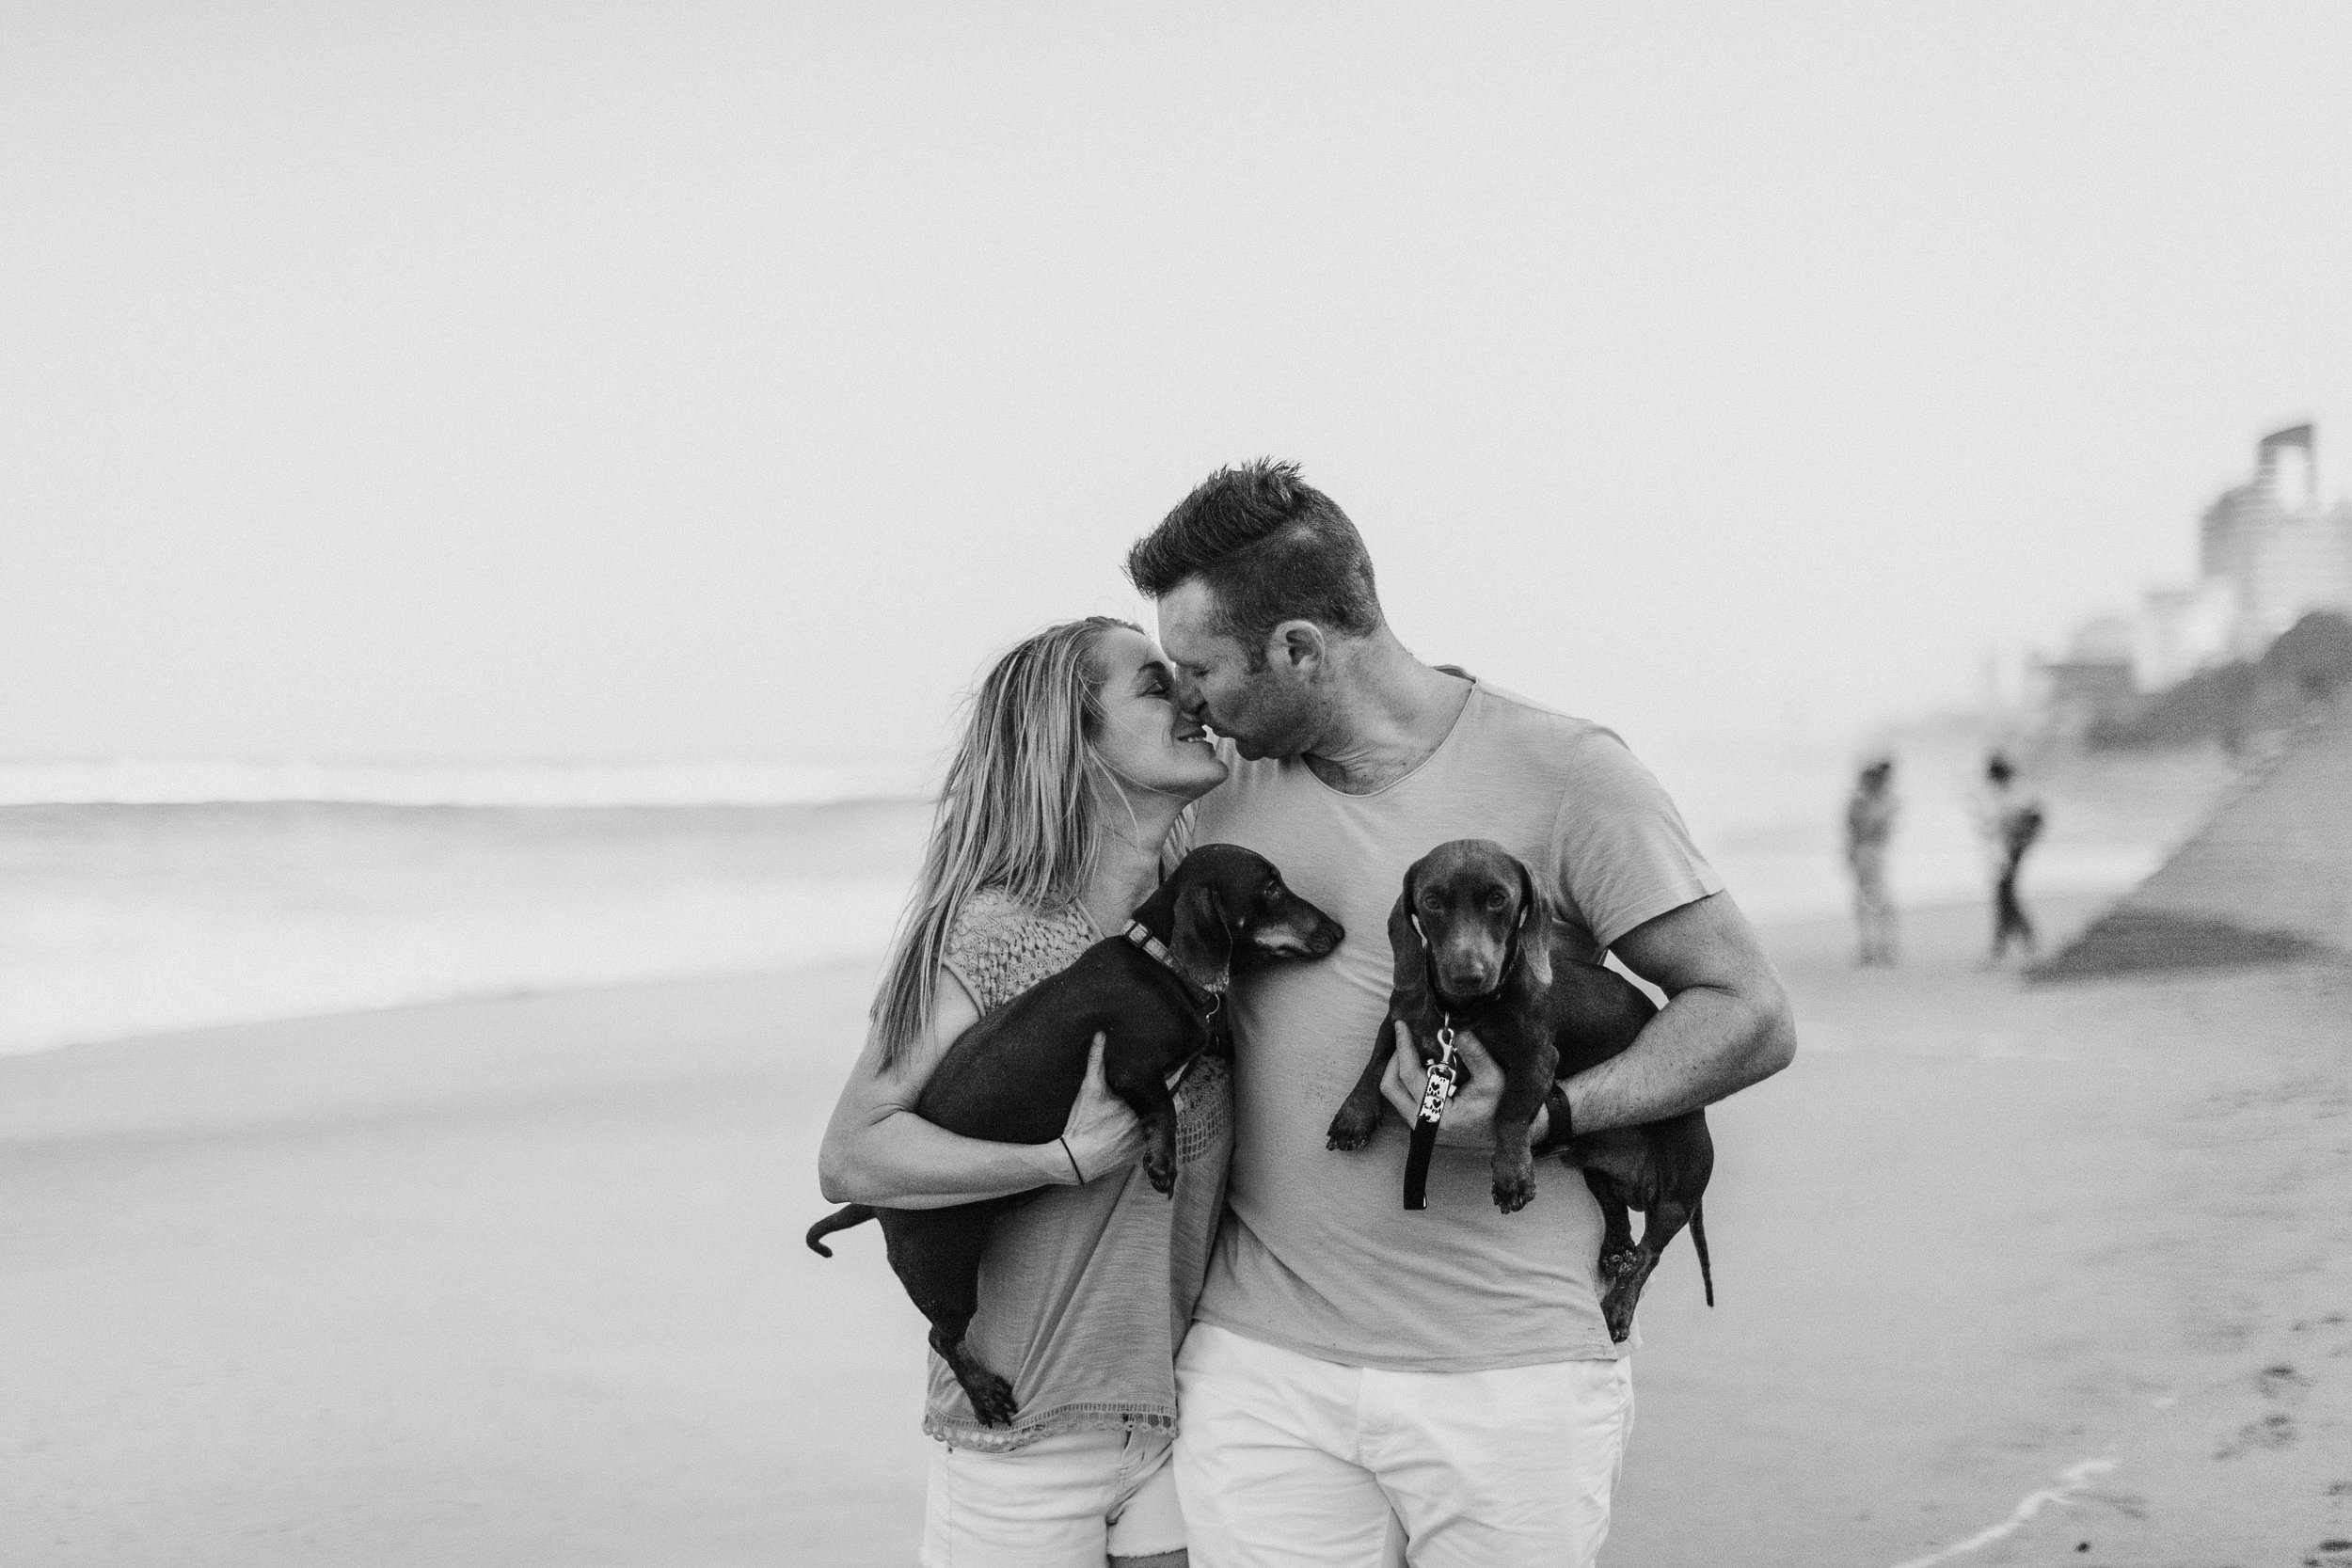 Kristi Smith Photography - Engagement Shoot - Steve & Tarryn 2.jpg